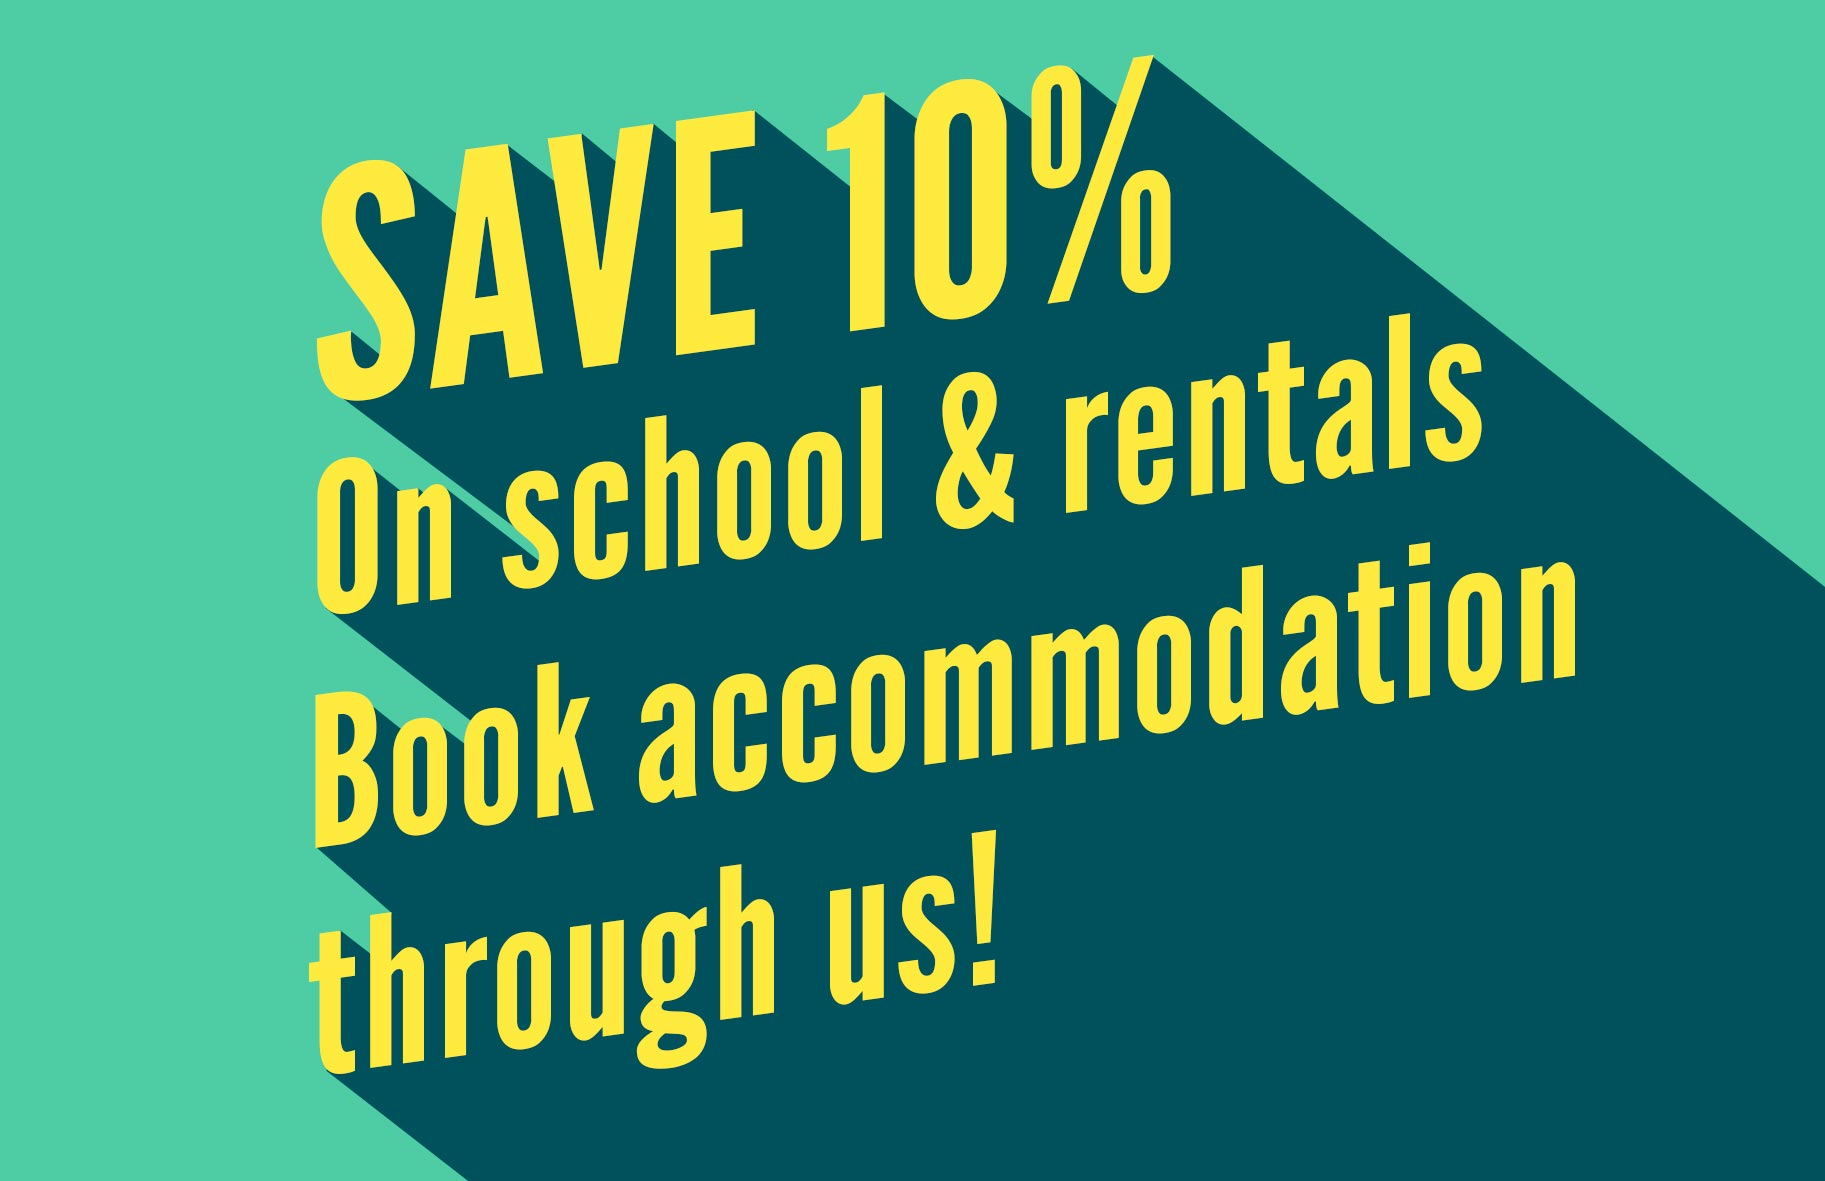 SAVE-10%-on-school-and-rentals.jpg